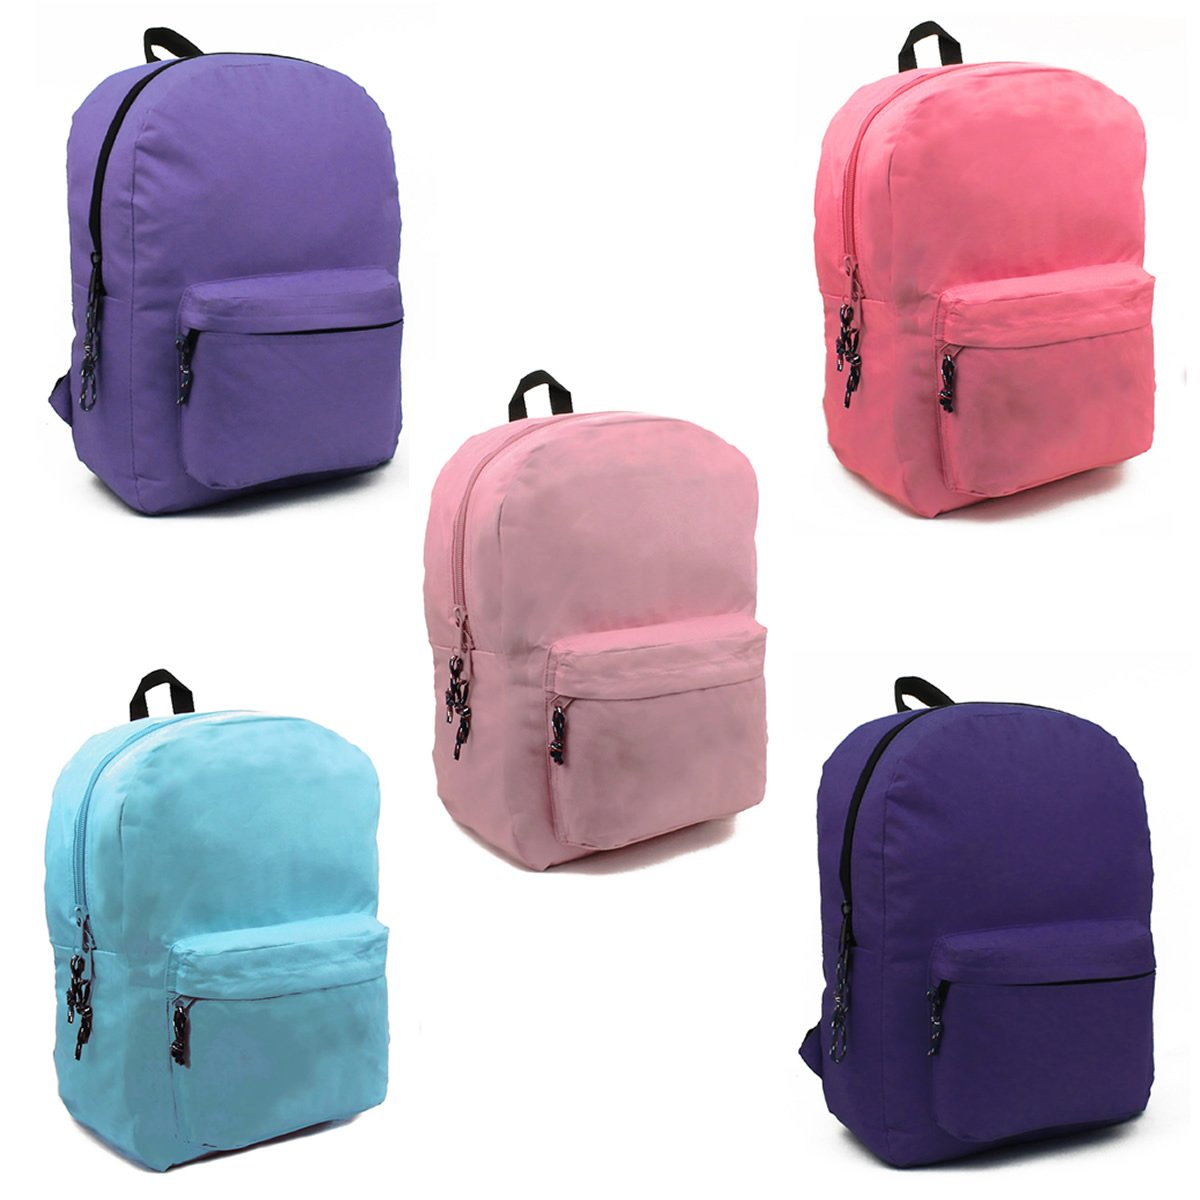 Wholesale 17'' Backpacks In 6 Assorted Colors - Case of 24